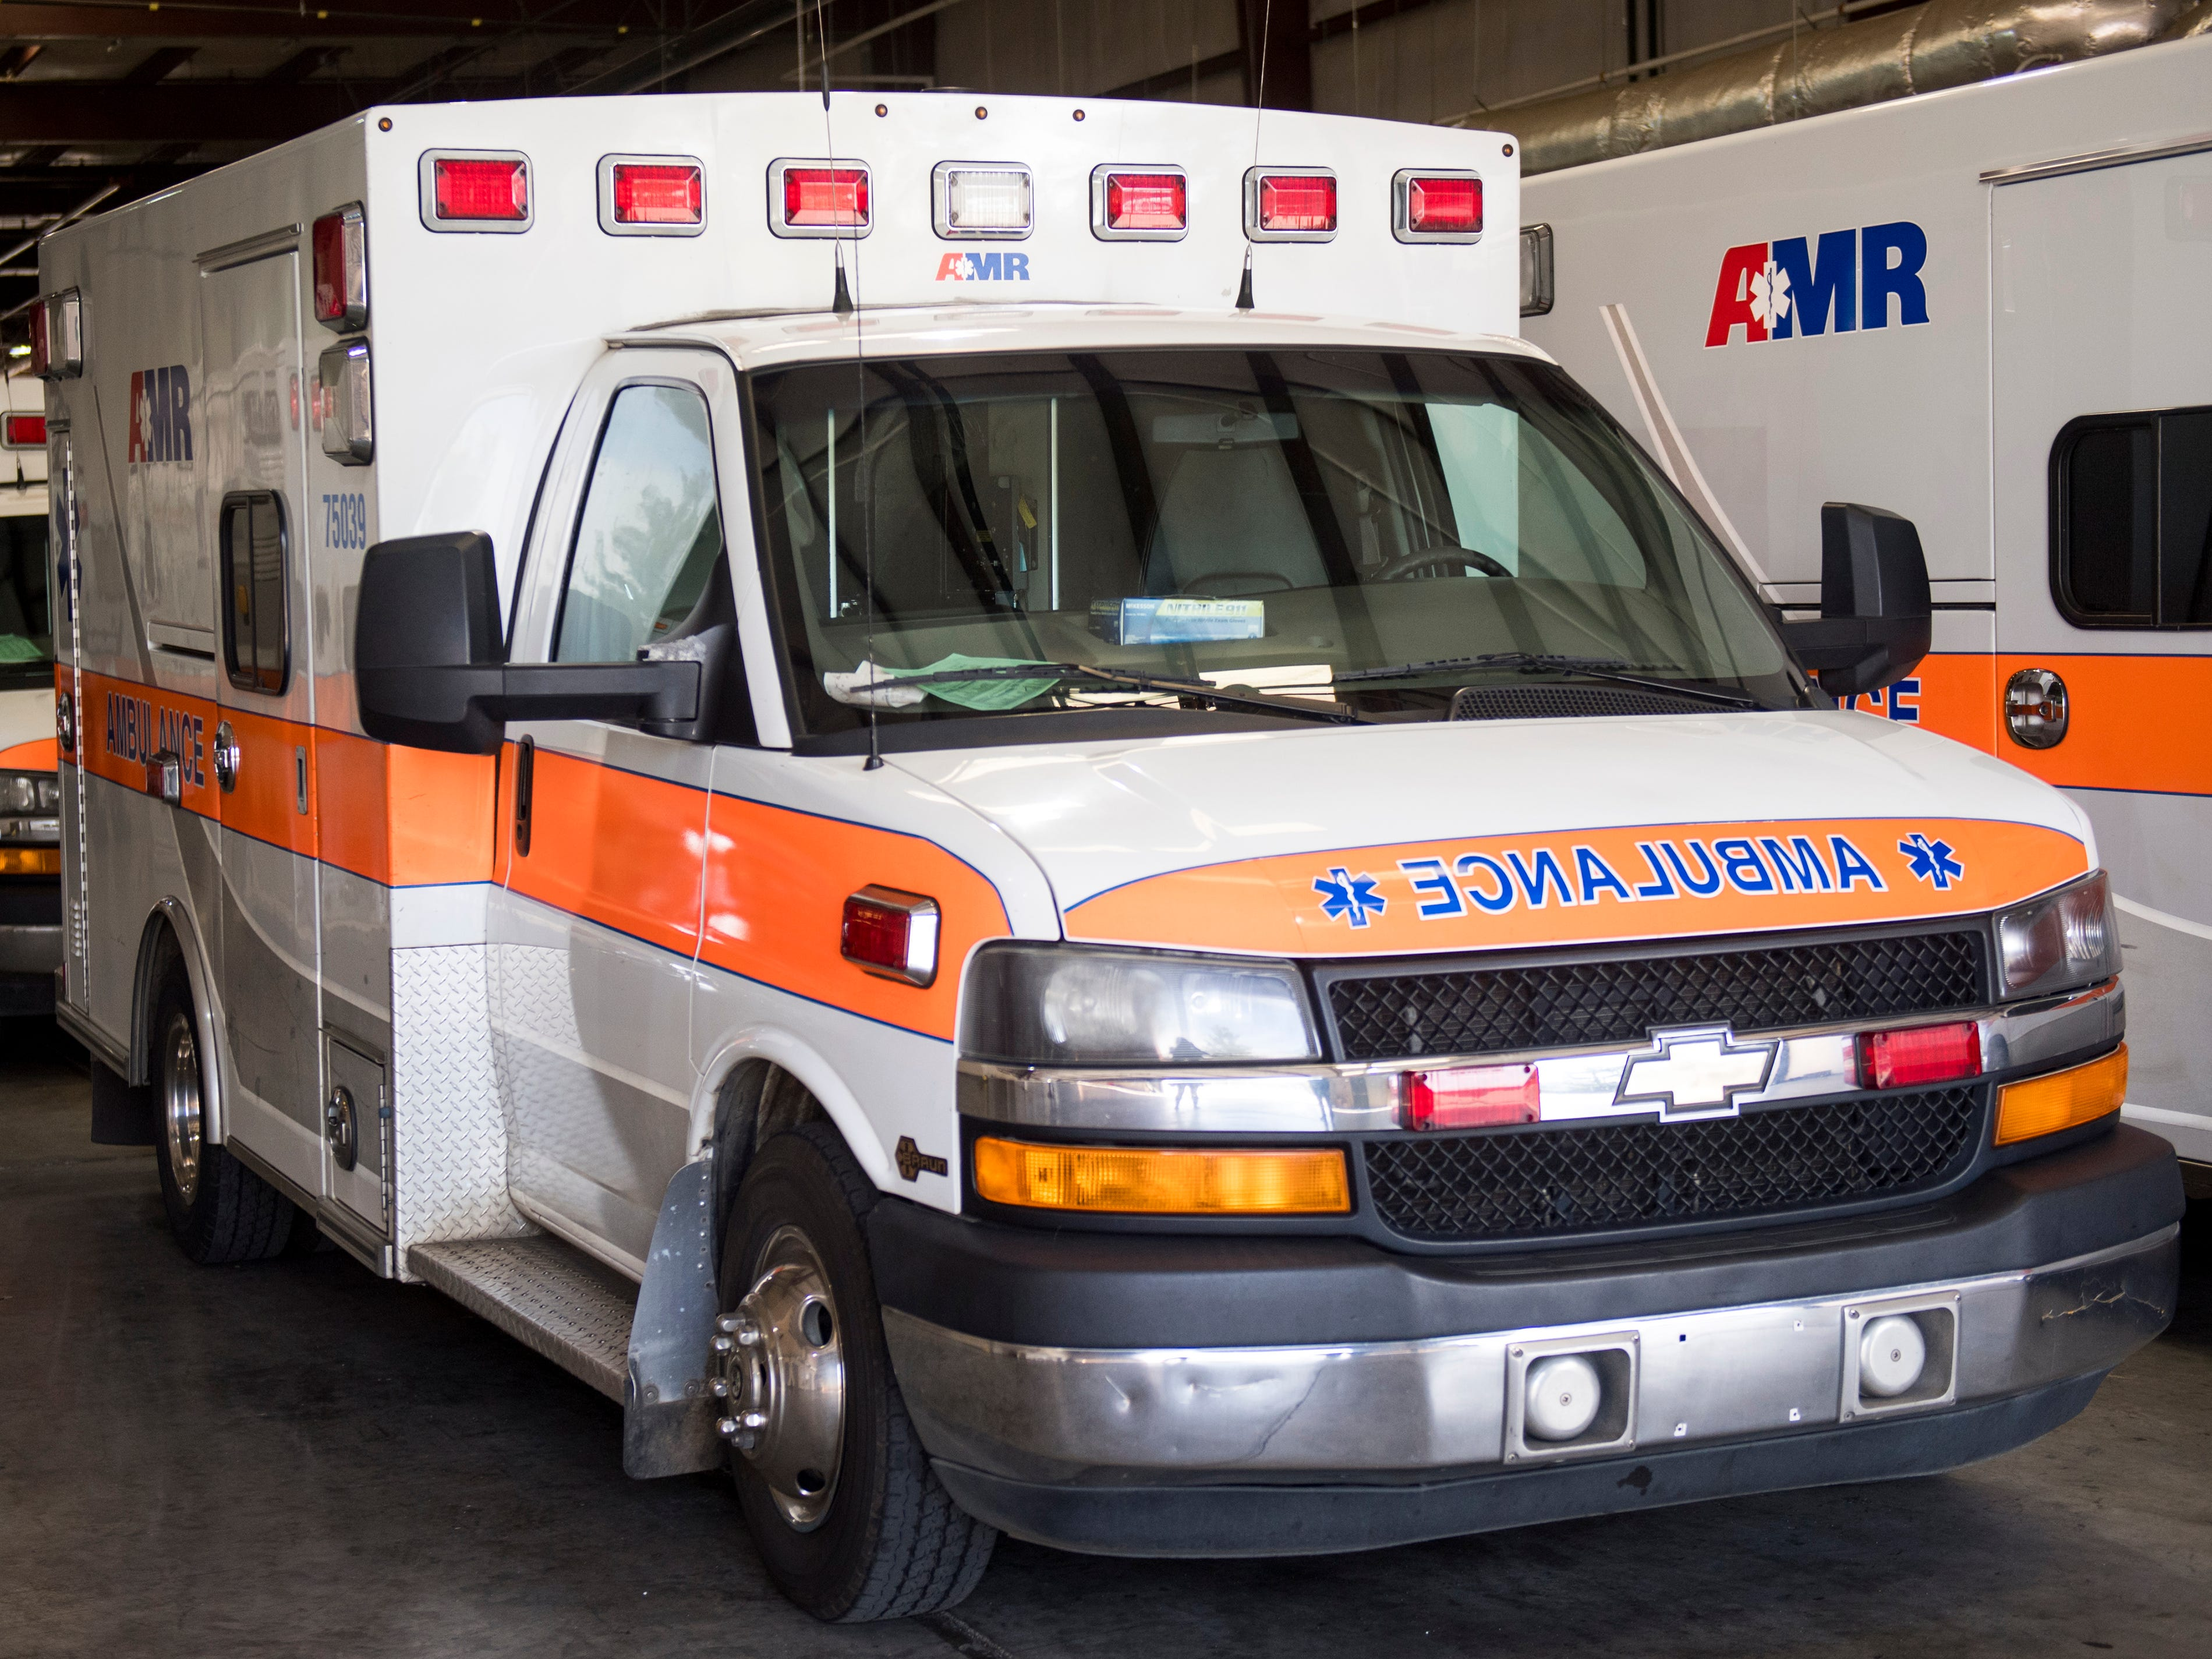 An AMR ambulance on Monday, December 3, 2018.